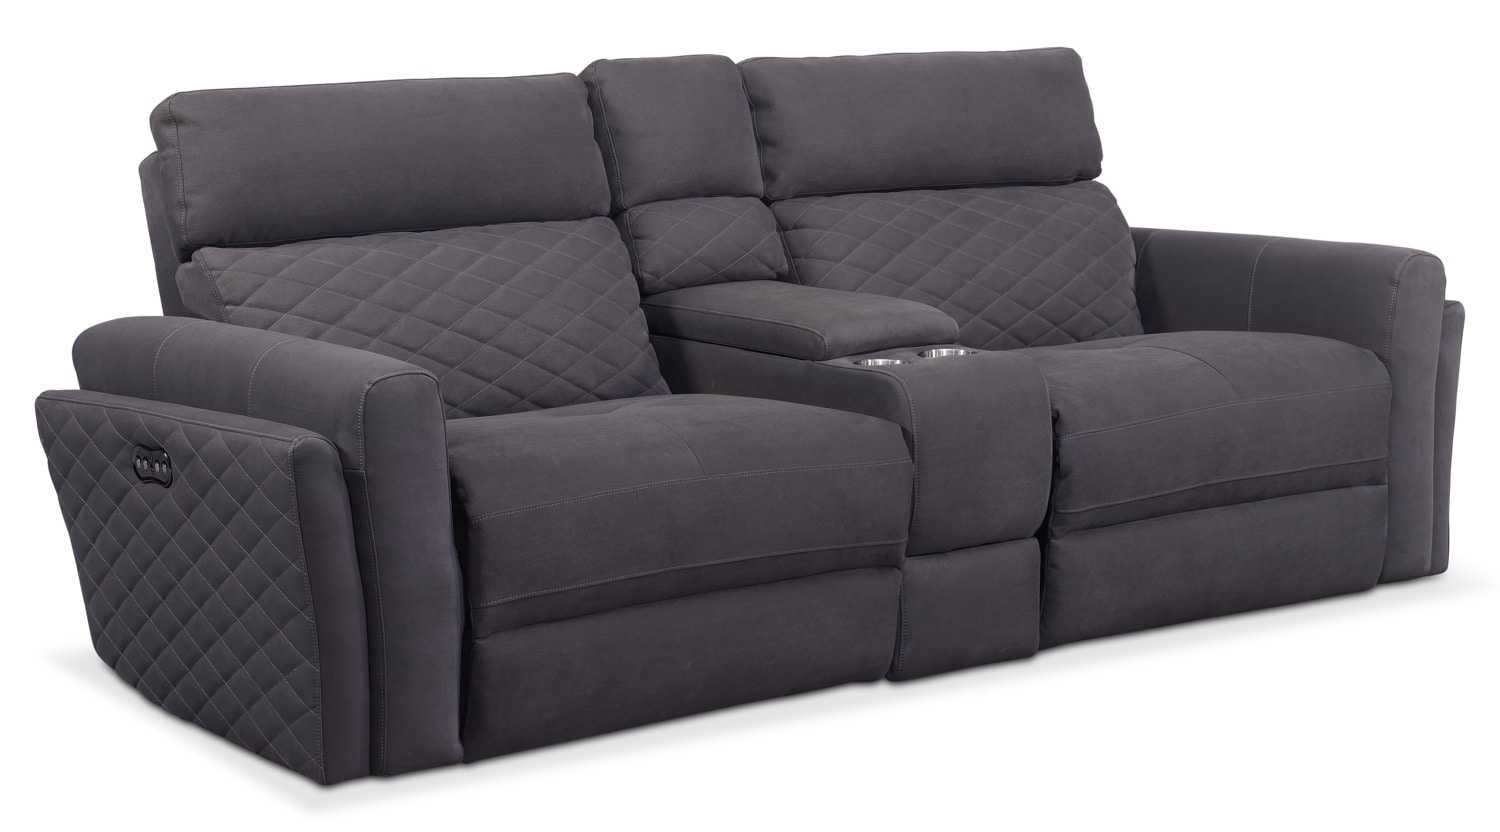 Catalina 3-Piece Power Reclining Sofa with Console - Gray